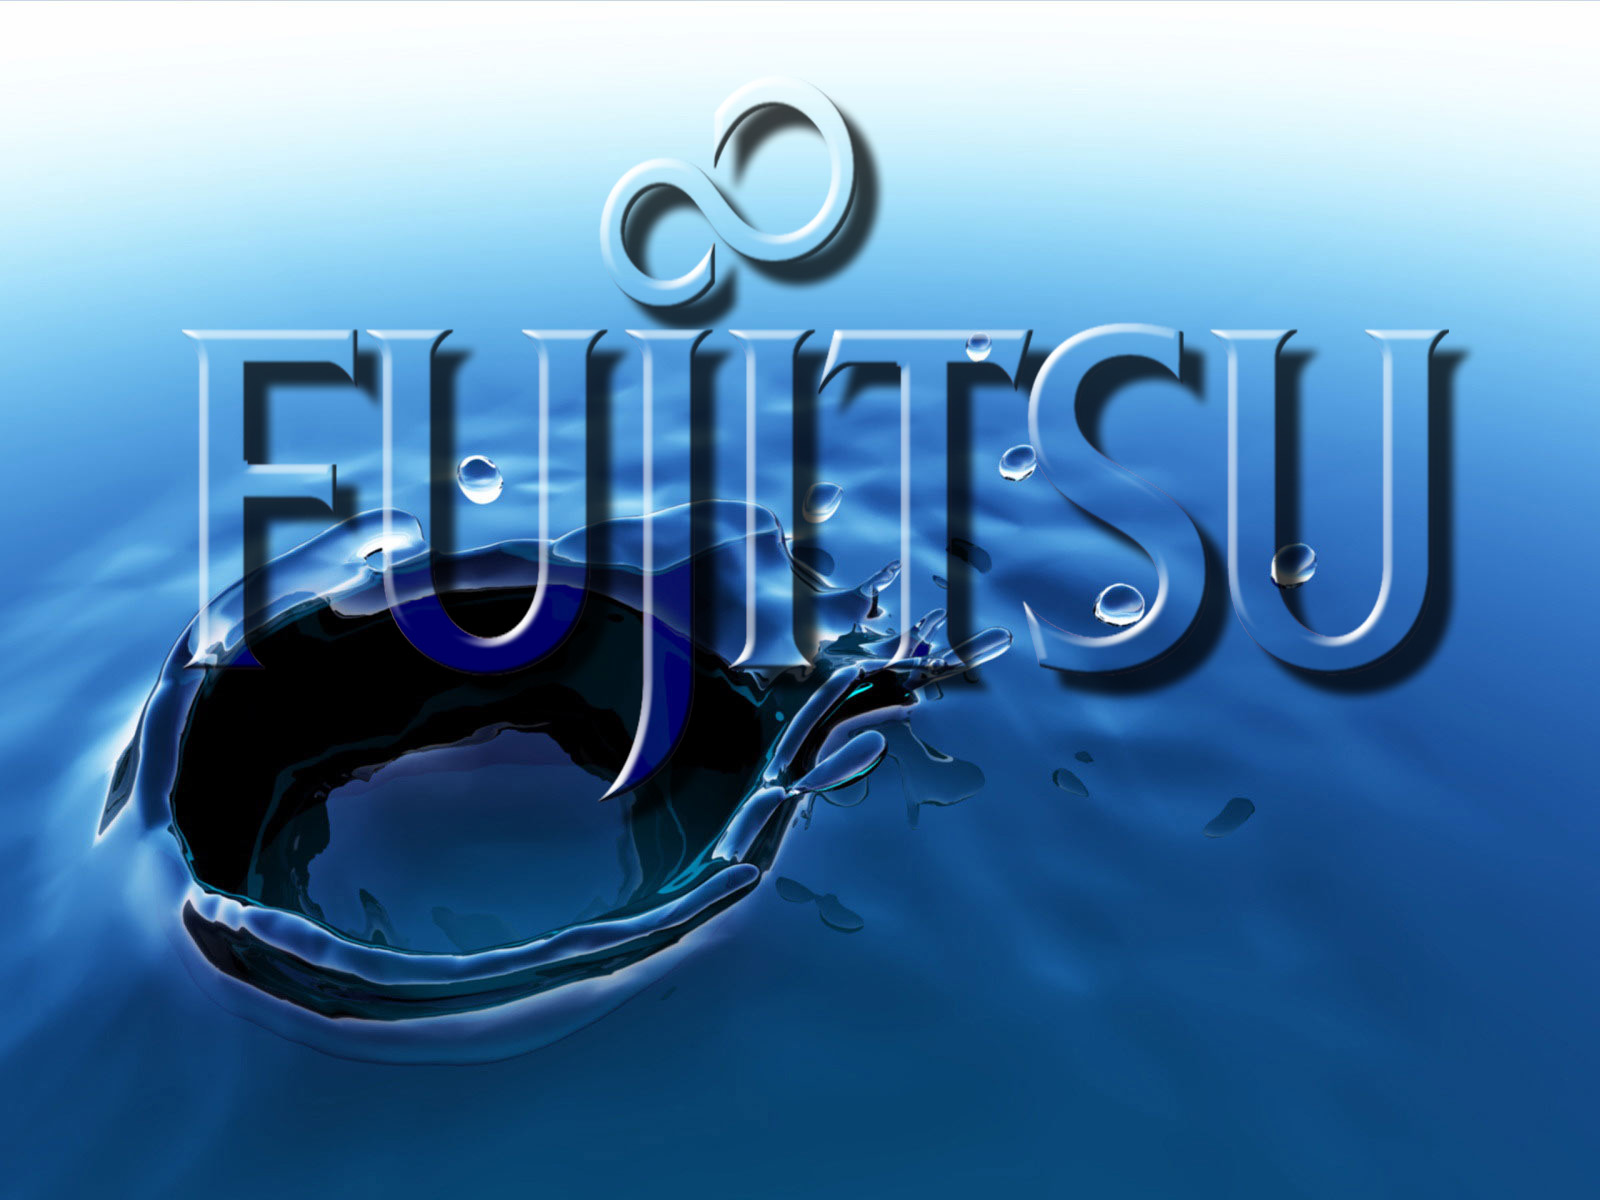 Hd Fujitsu Wallpaper Full Hd Pictures